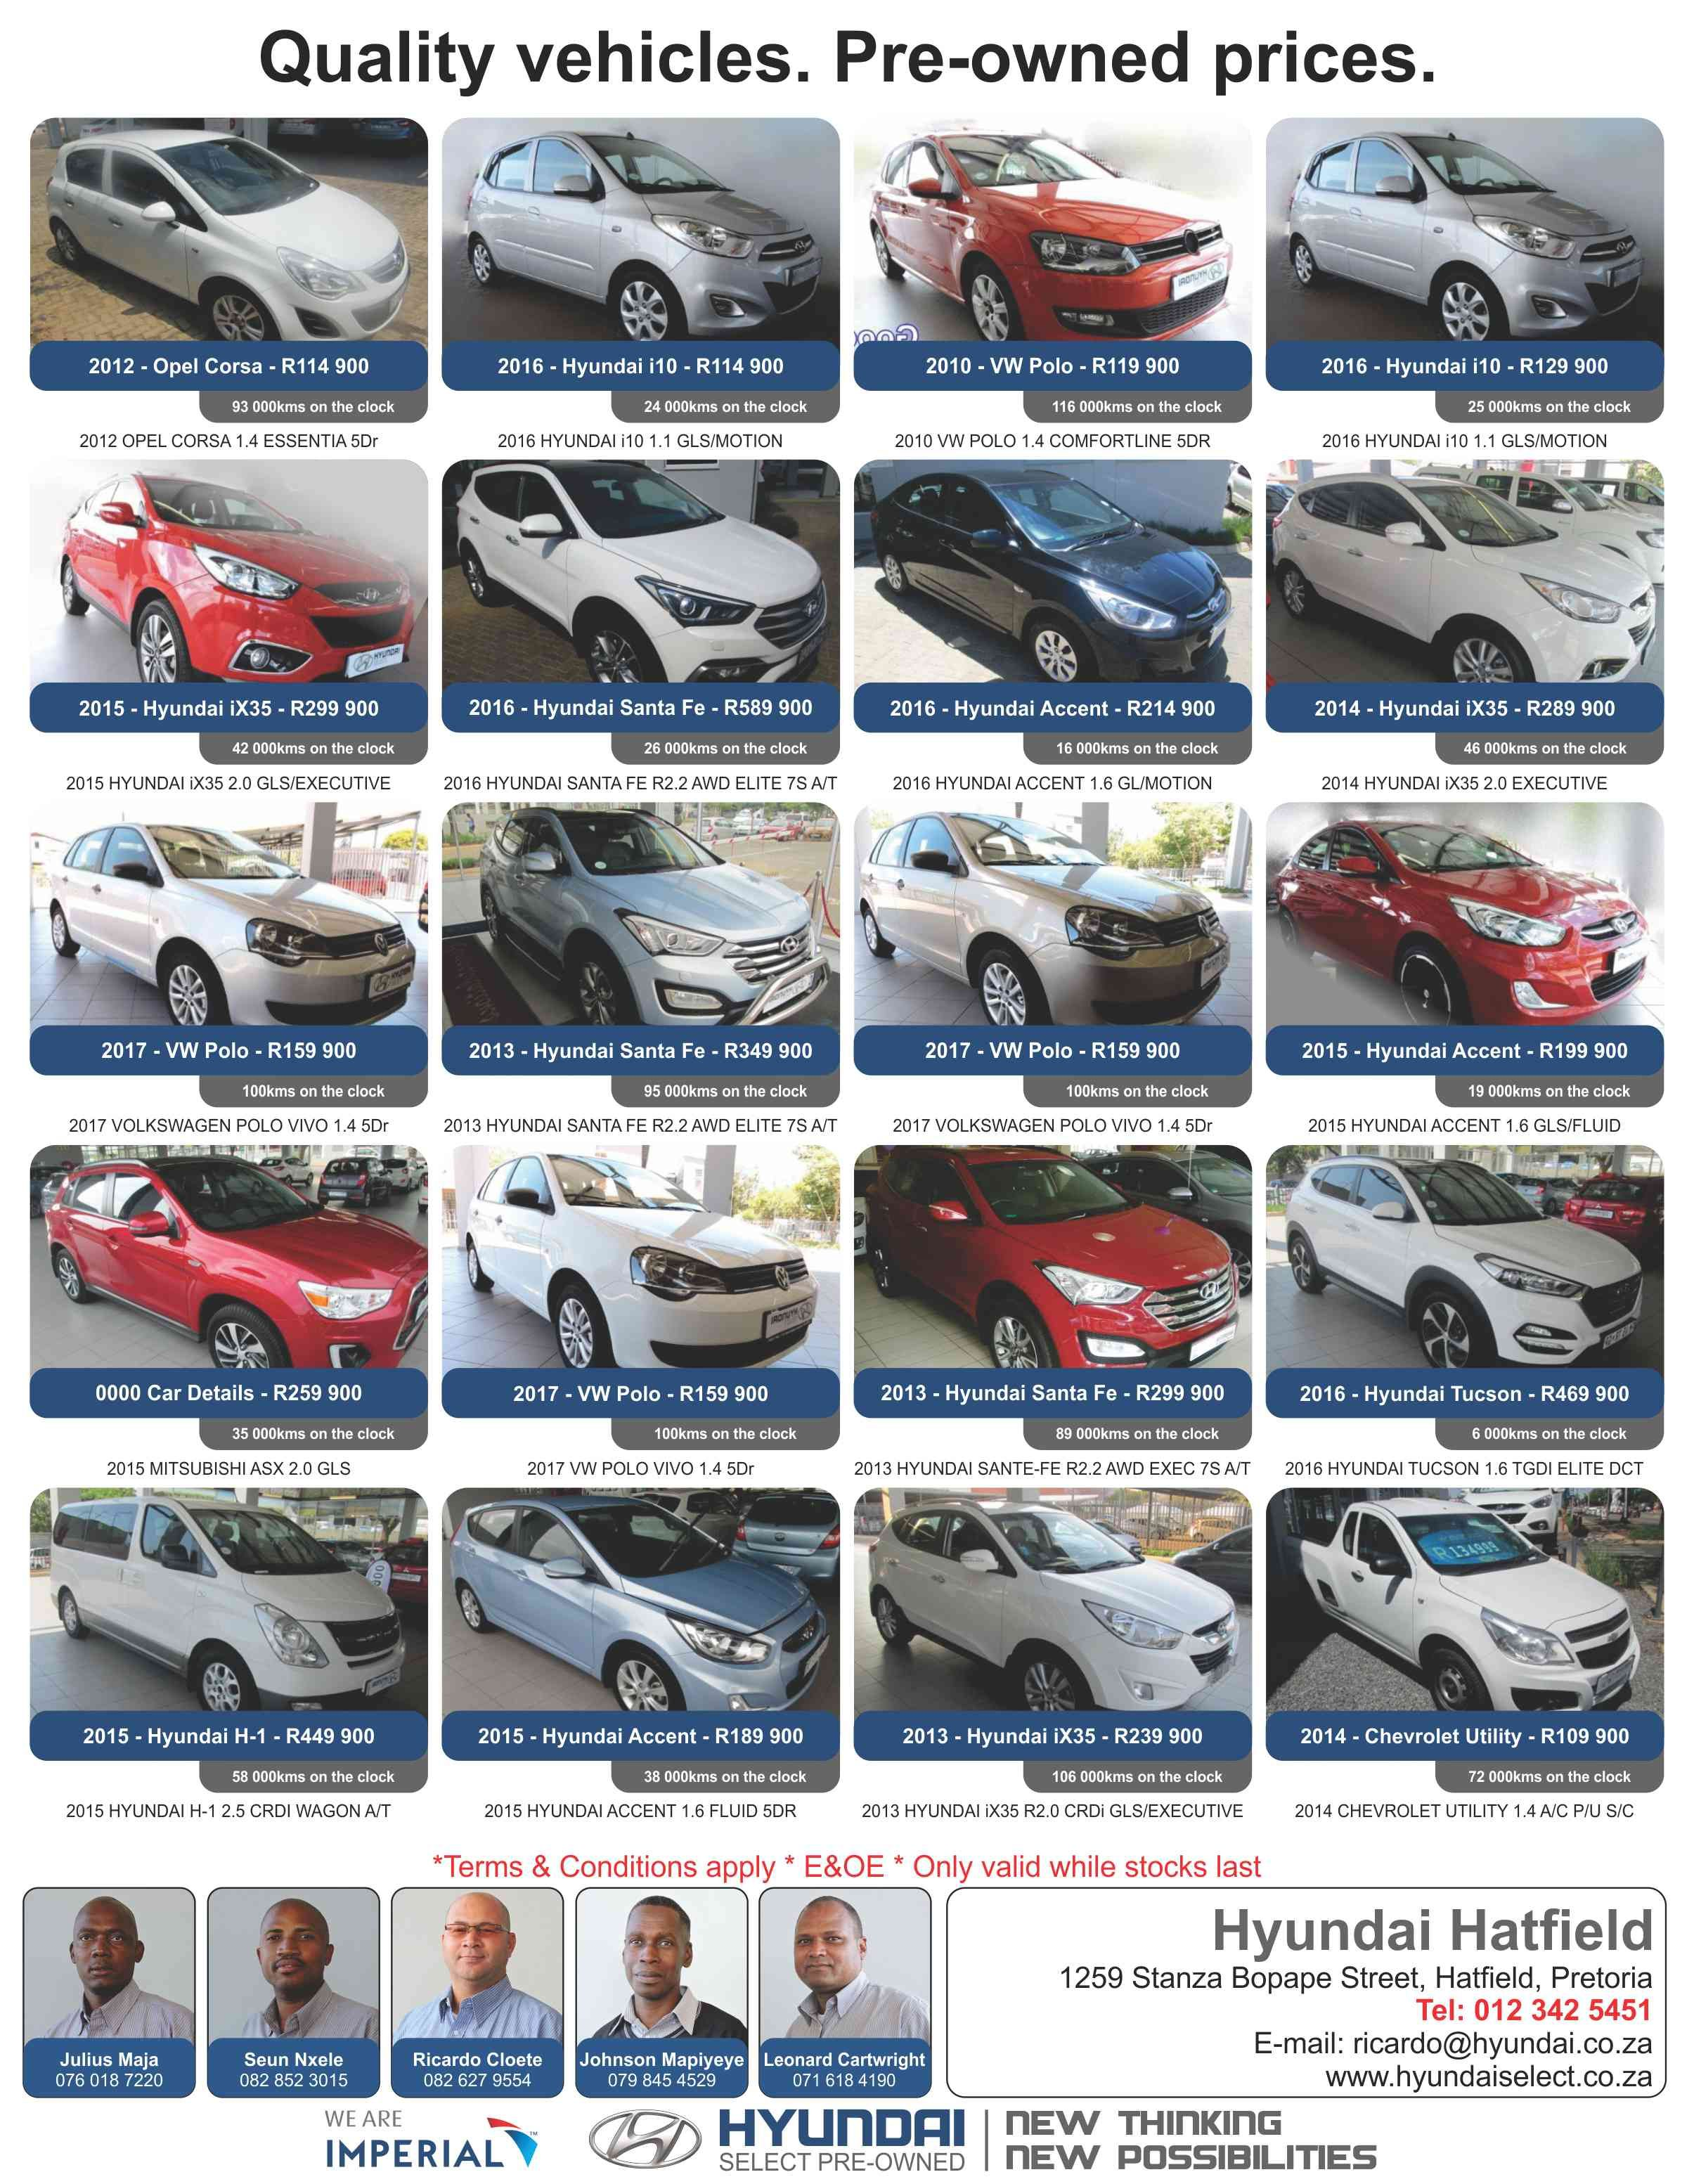 Hyundai Hatfield Quality Vehicles Pre Owned Prices Dont Miss Out Hyundaihatfield Call Us Now For More Information And Prices Hyundai Opel Corsa Vw Polo